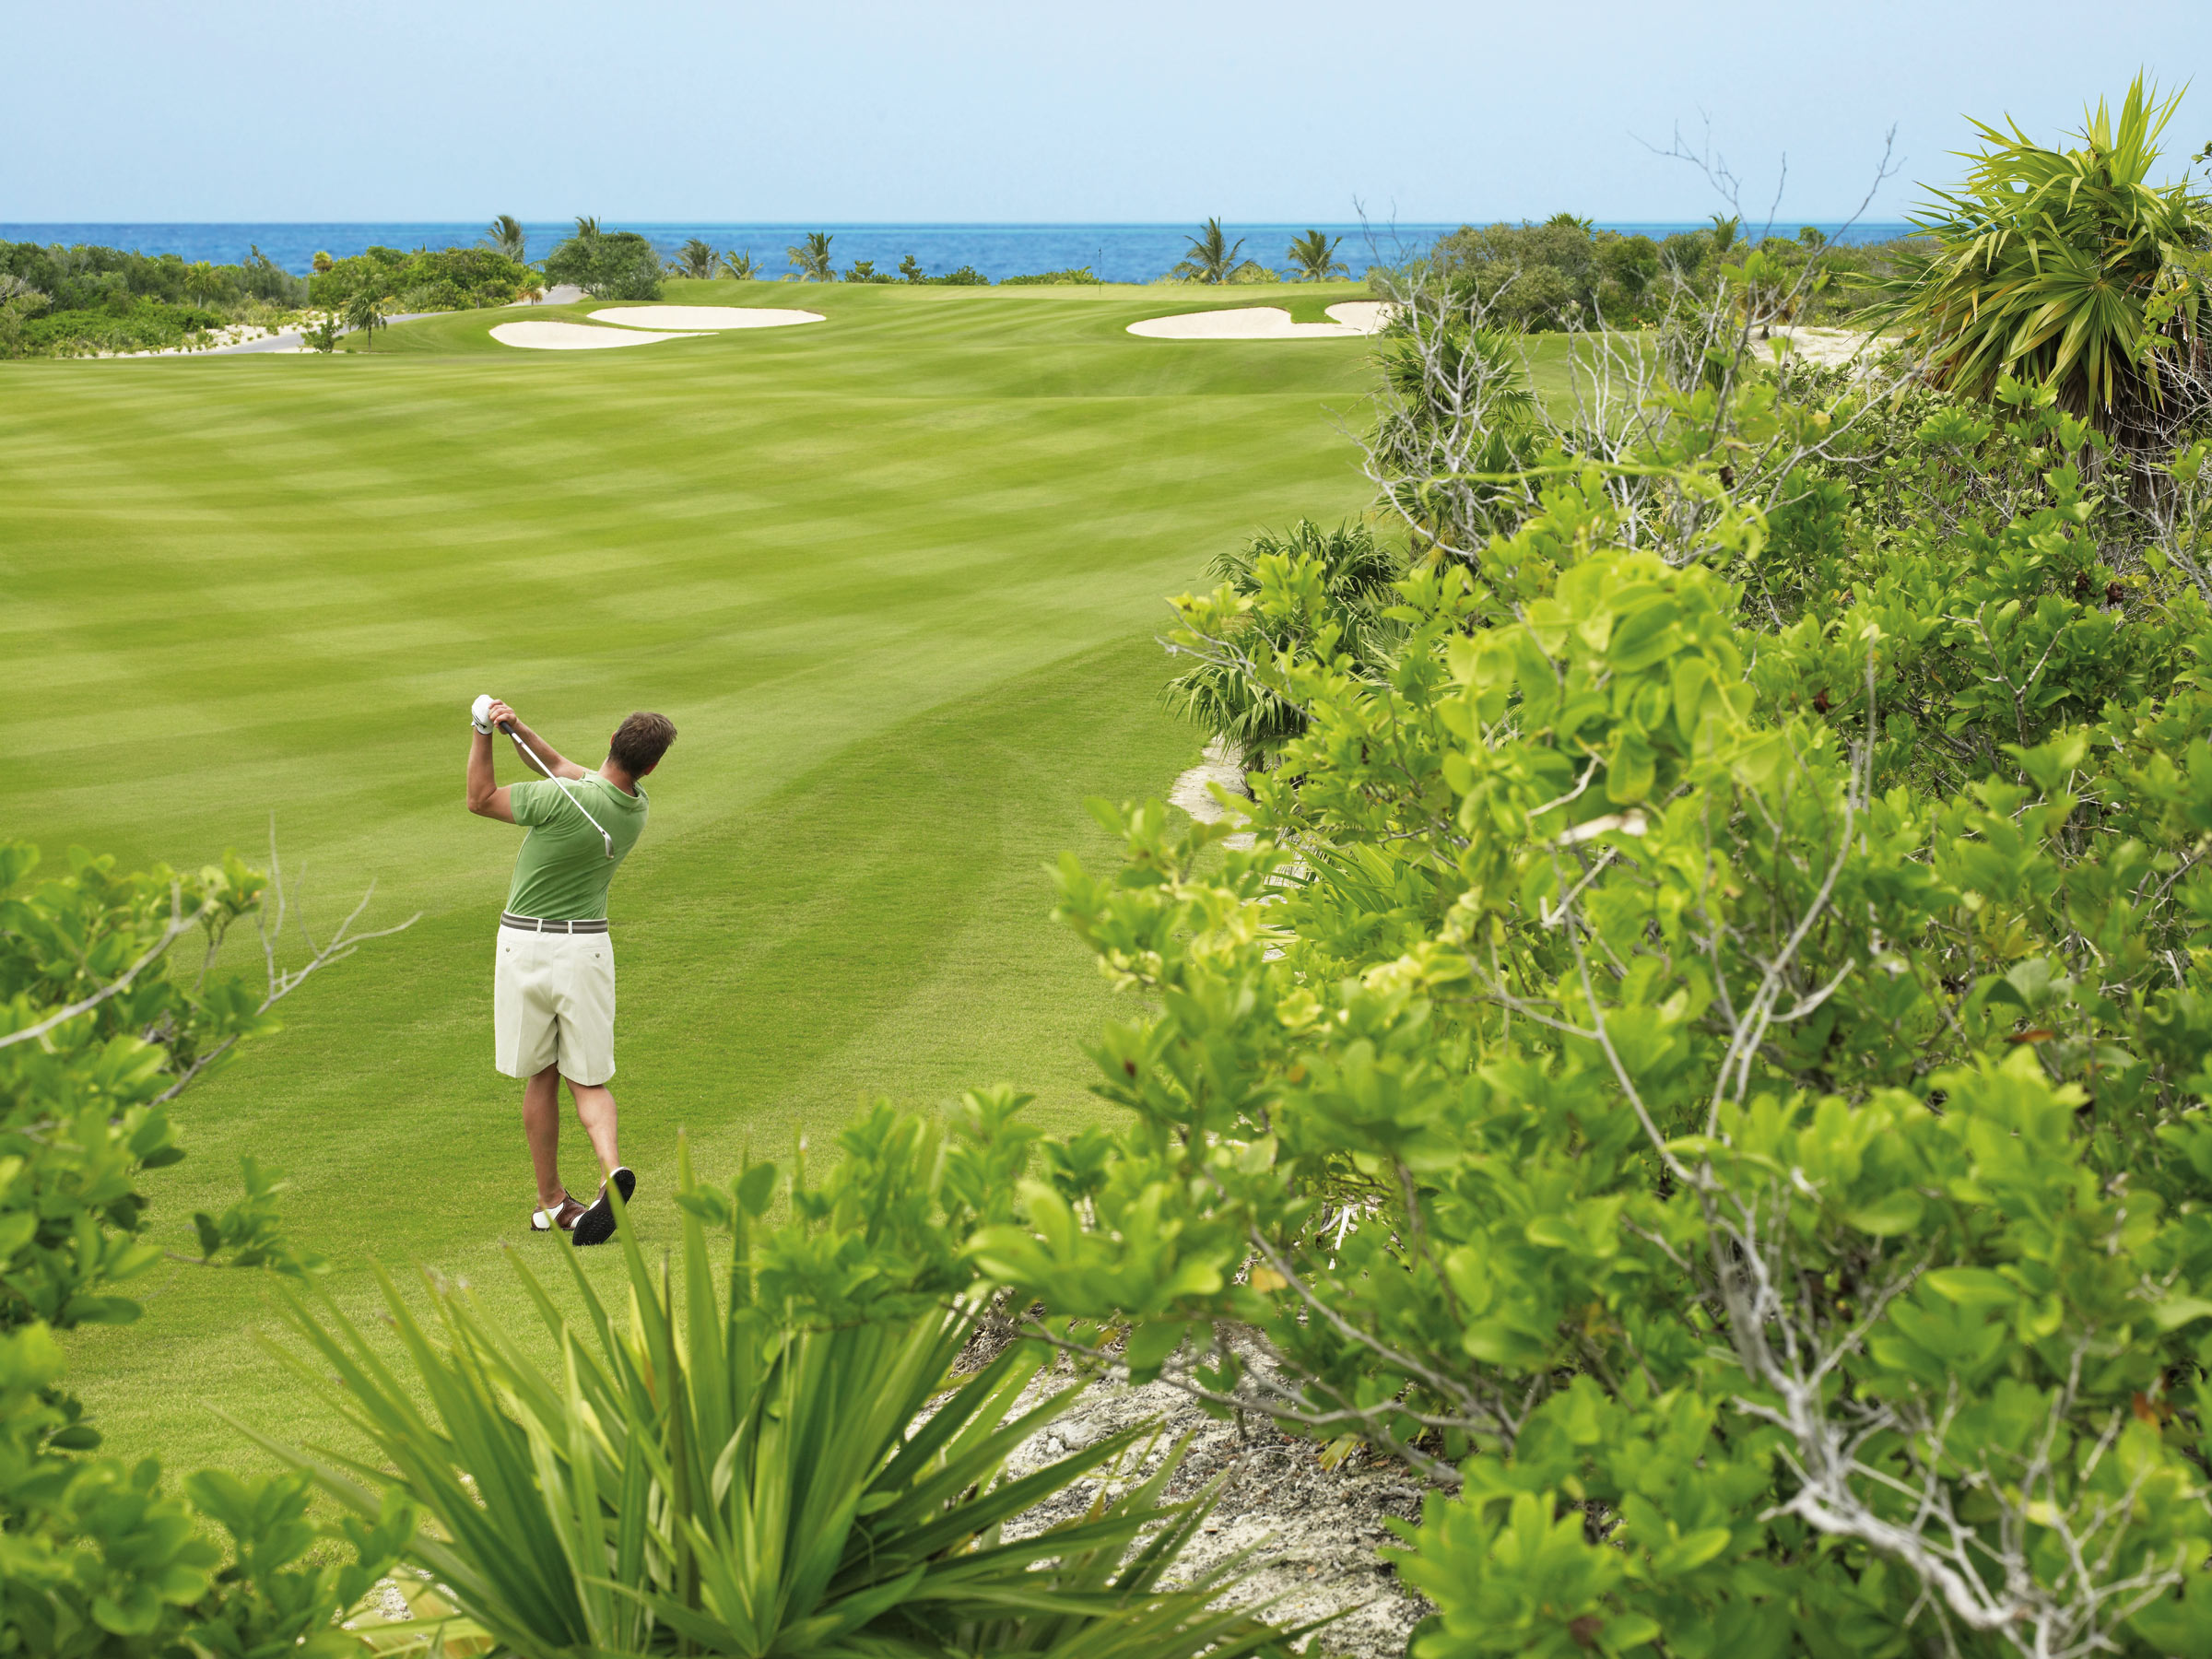 Lessons and Practice at our Cancun Golf Resort